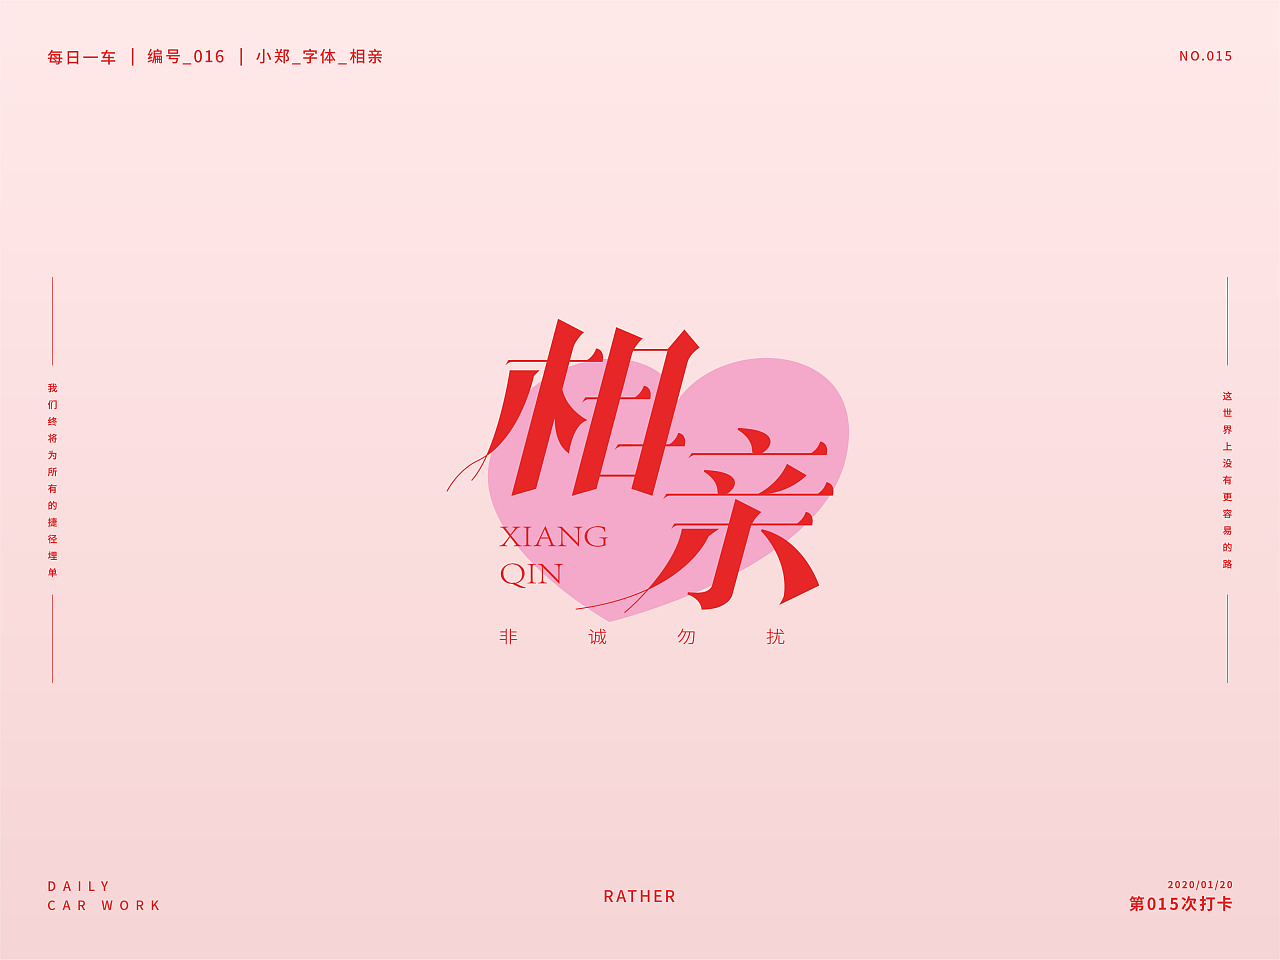 Chinese font designs in different styles and backgrounds with blind dates as the theme.